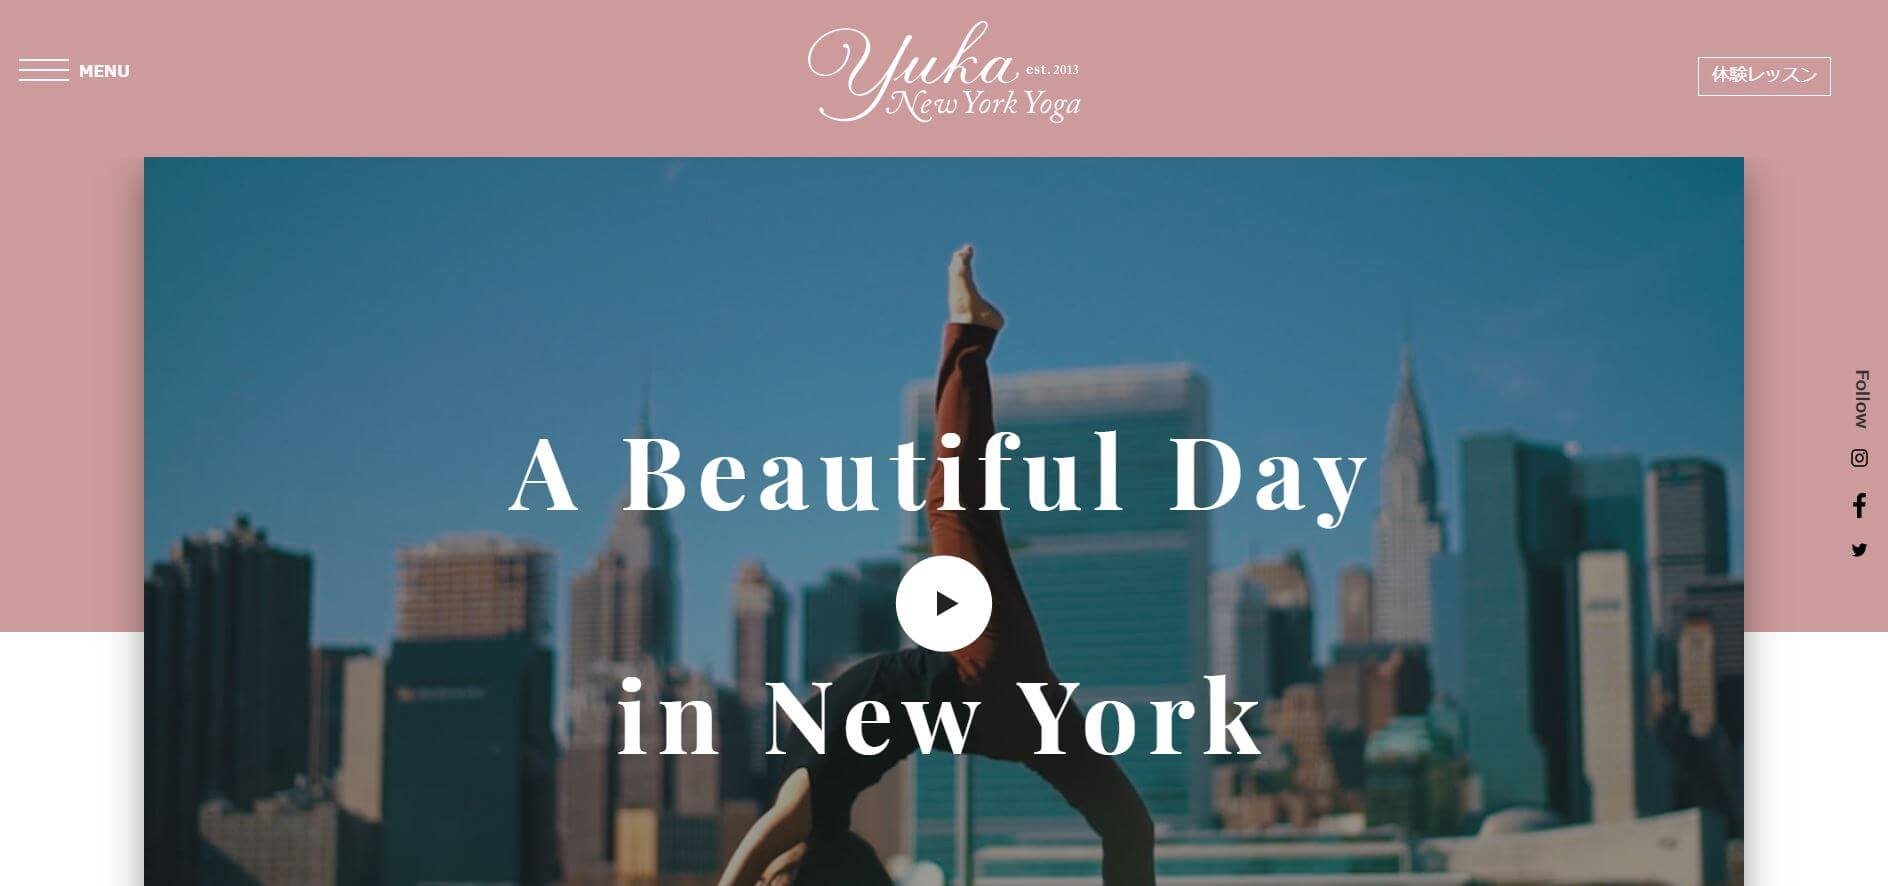 Yuka New York Yoga 恵比寿